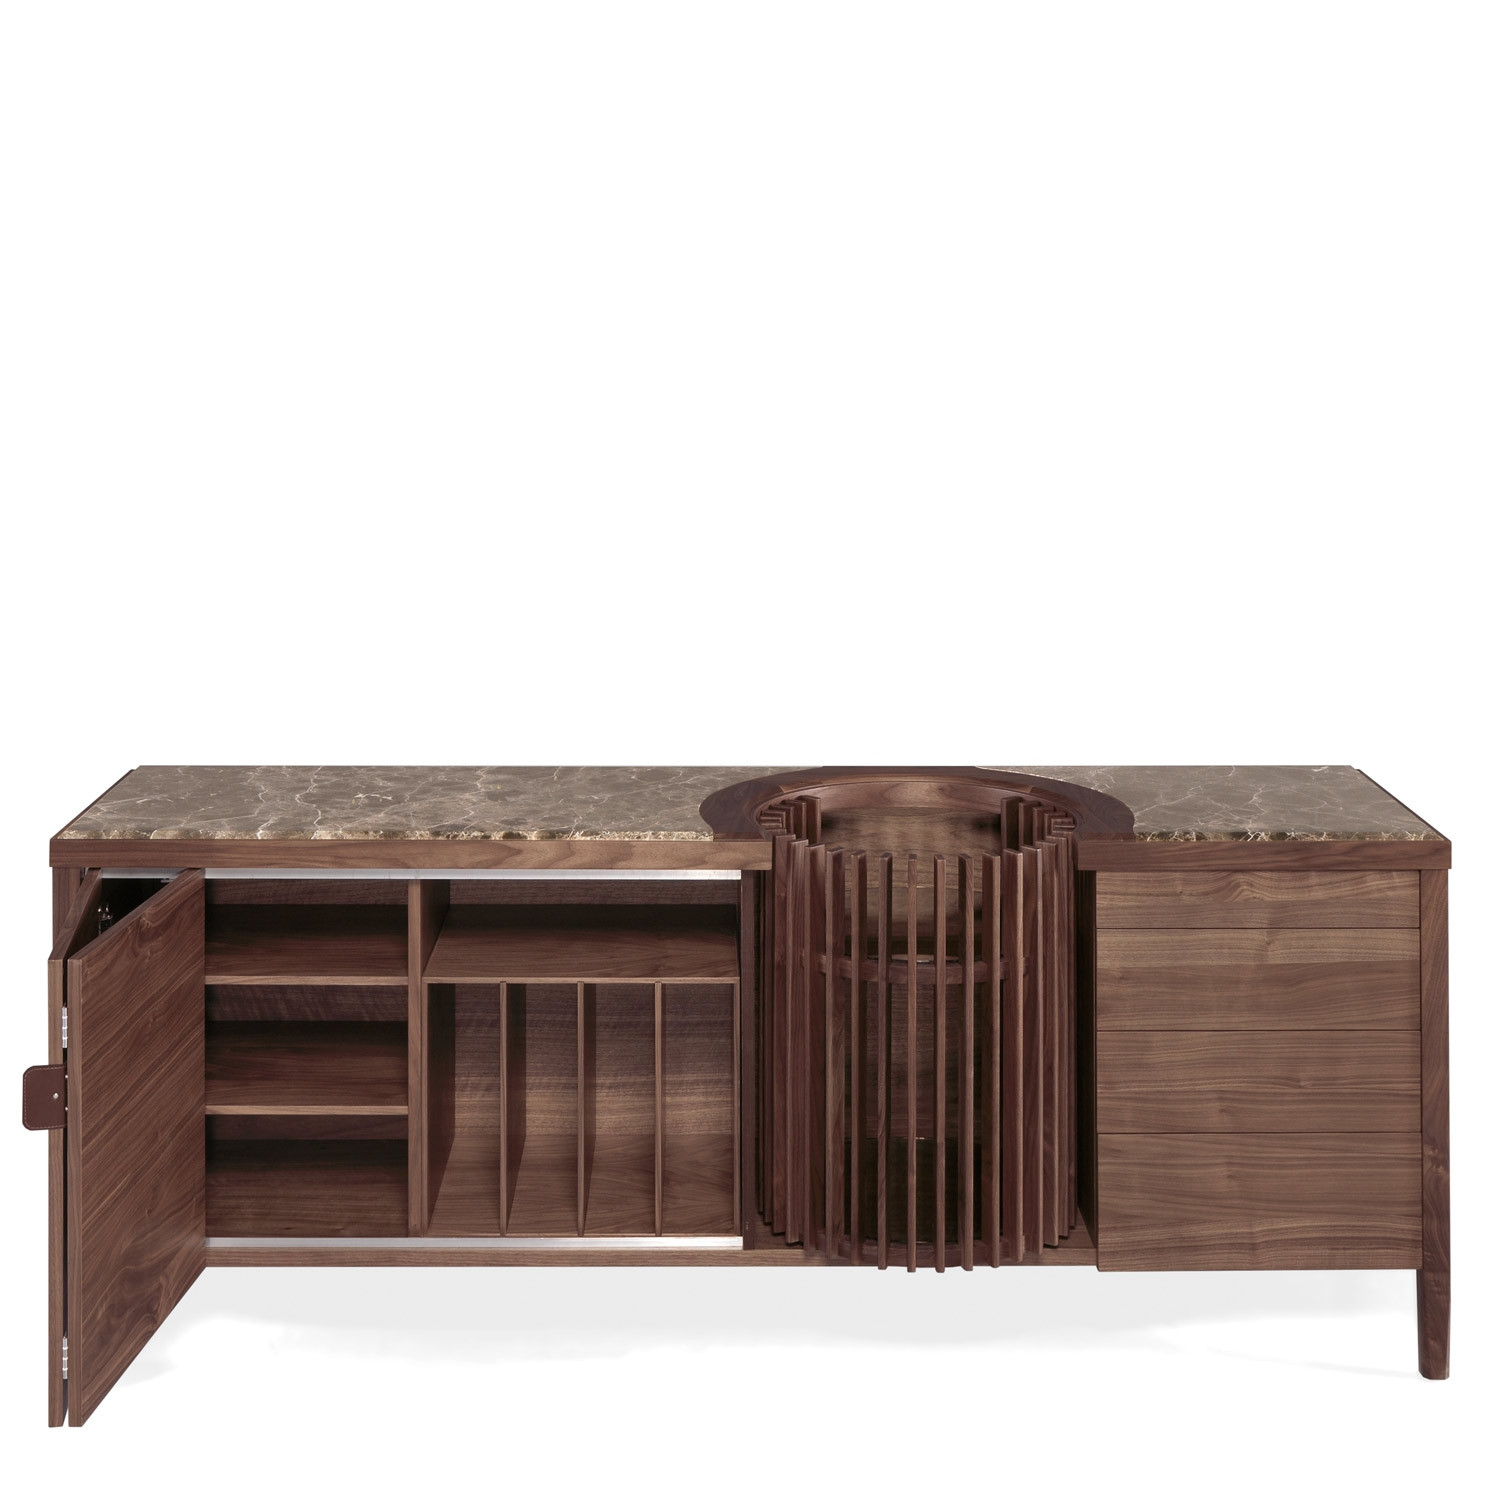 Carousel Sideboard With Sliding Doors